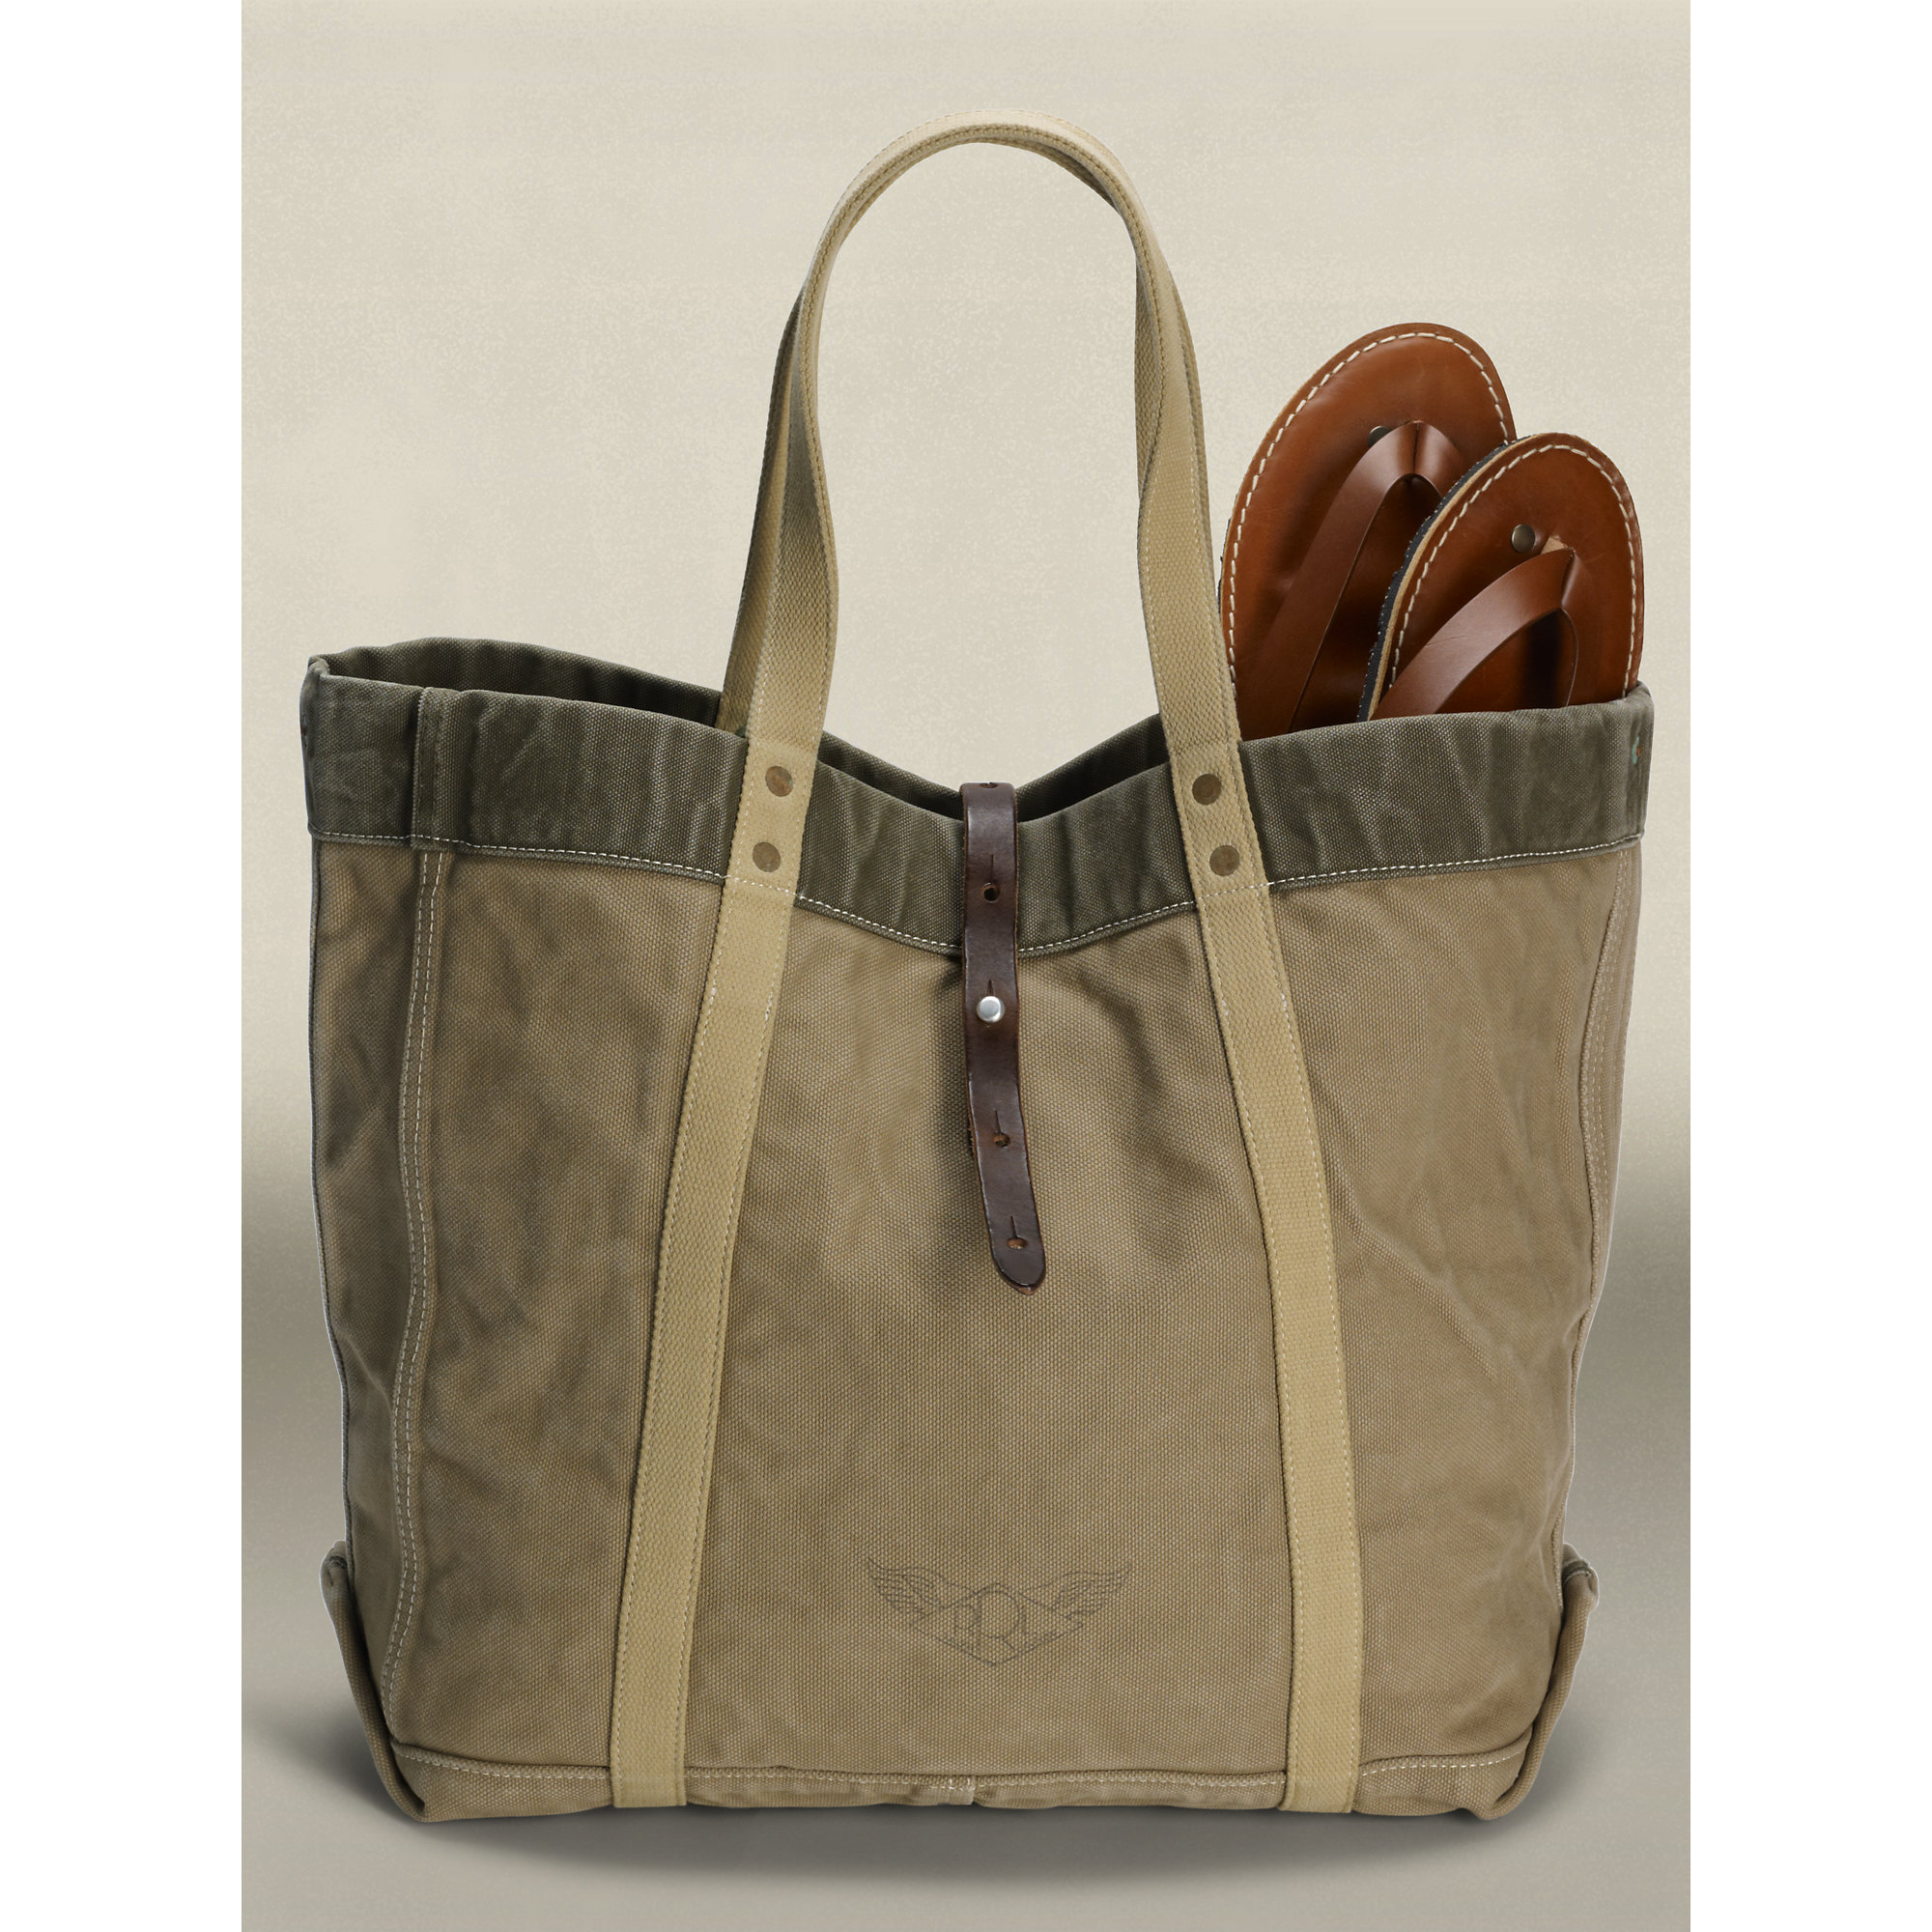 3fc830f65044 Lyst - Ralph Lauren Vintage Canvas Tote in Green for Men